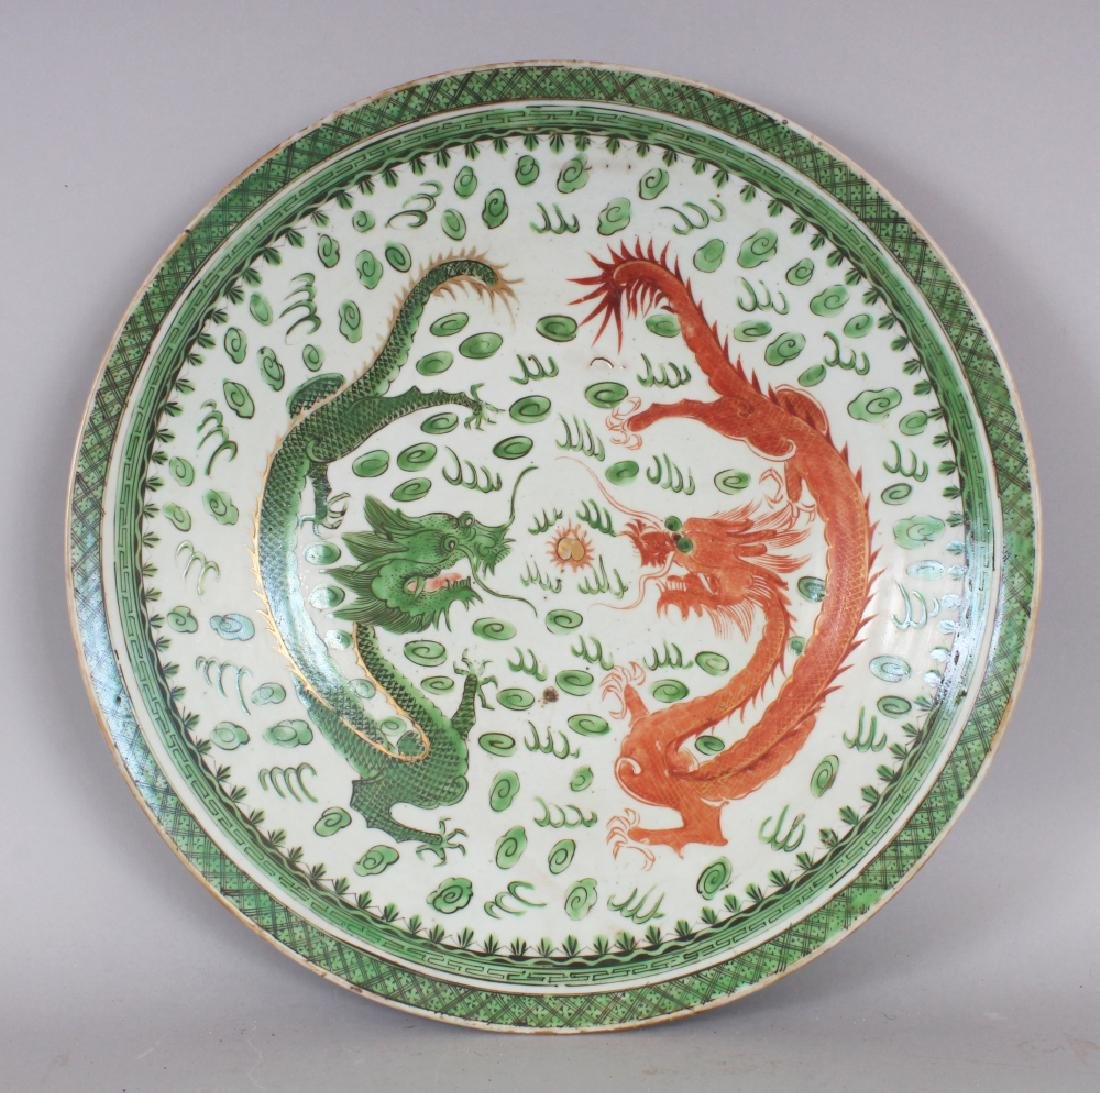 A 19TH/20TH CENTURY CHINESE CANTON GREEN & IRON-RED